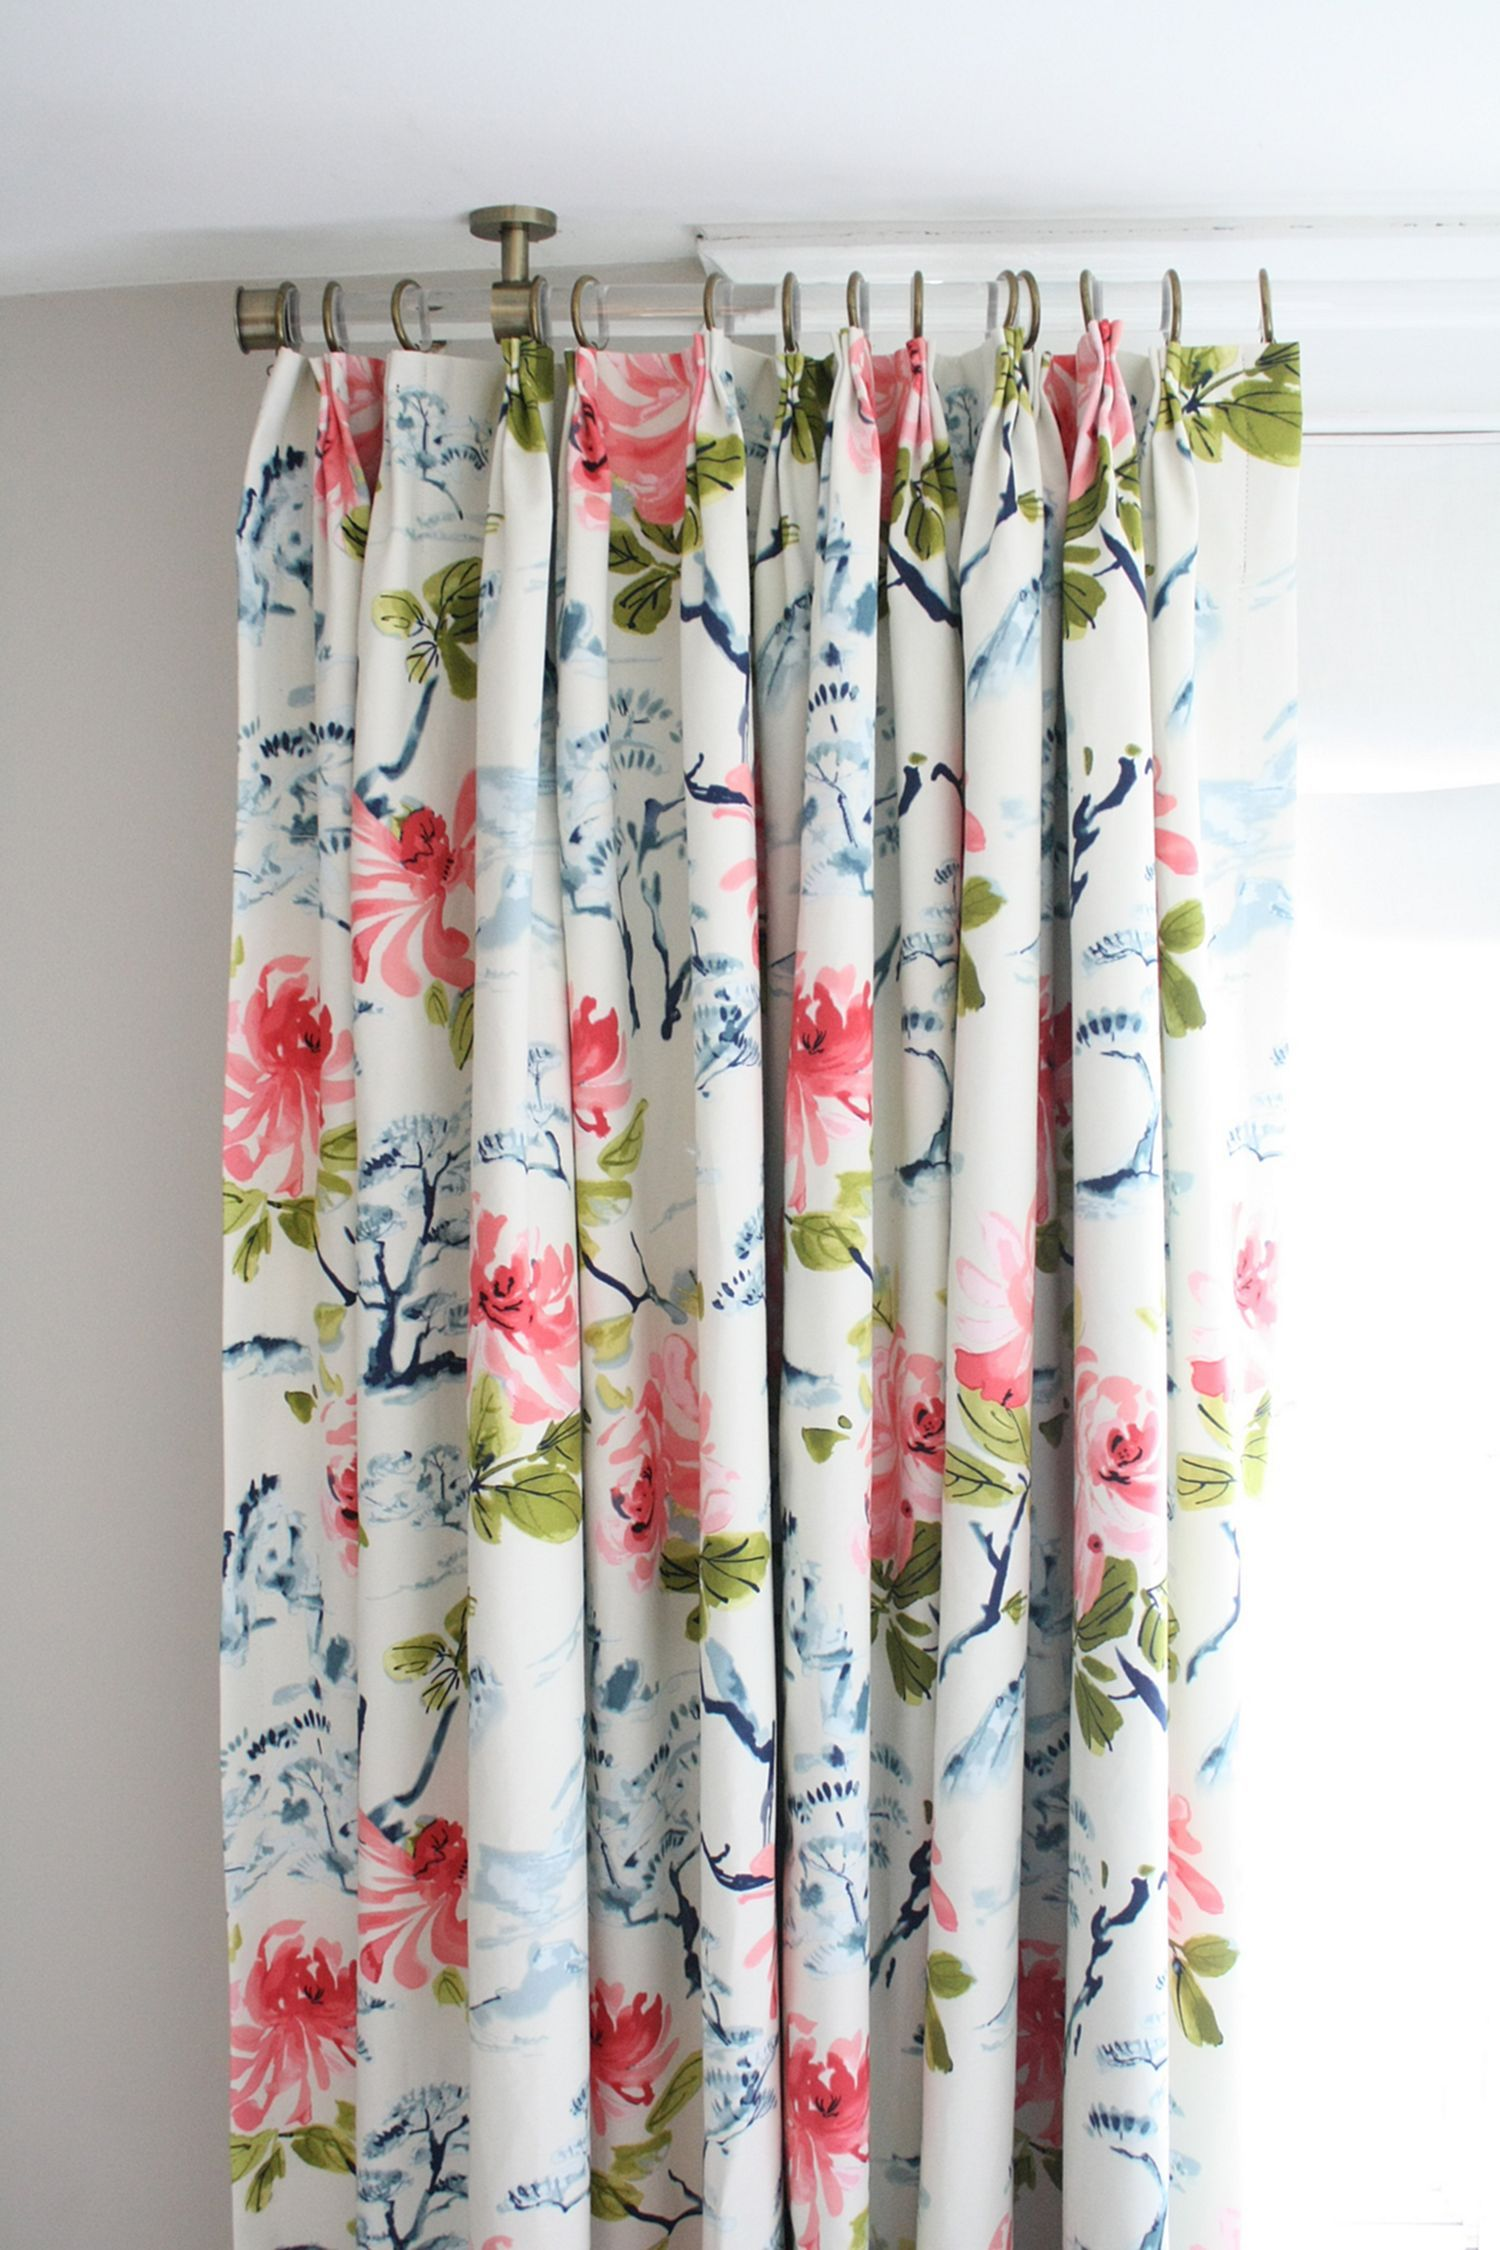 88 Cute Bedroom Curtain Design Ideas For Your Kids